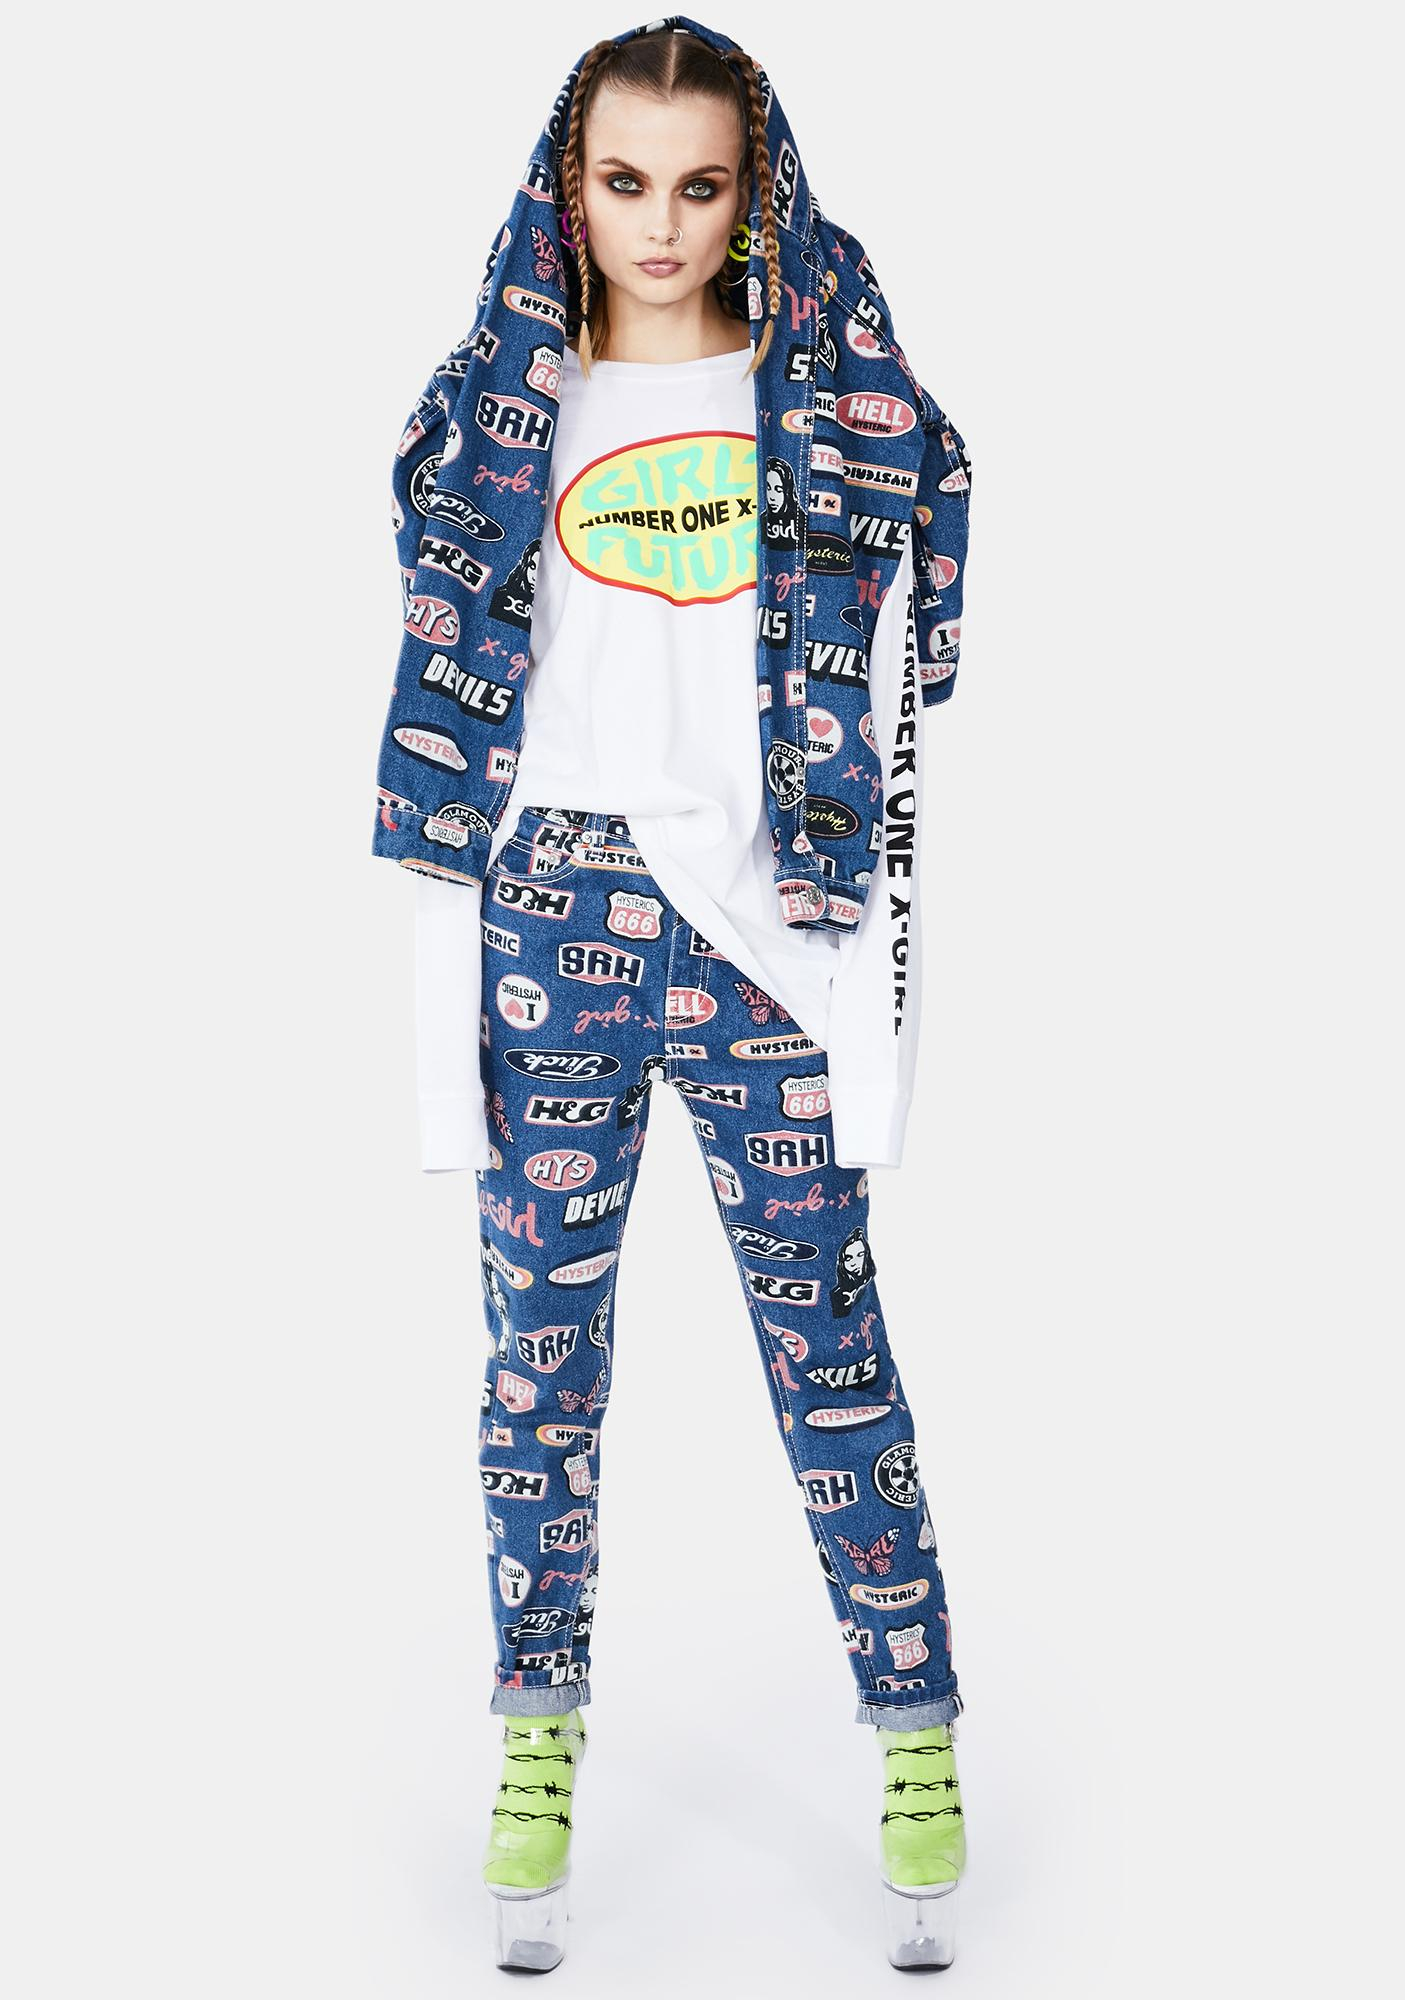 x-Girl Hysteric Glamour Icon Pants